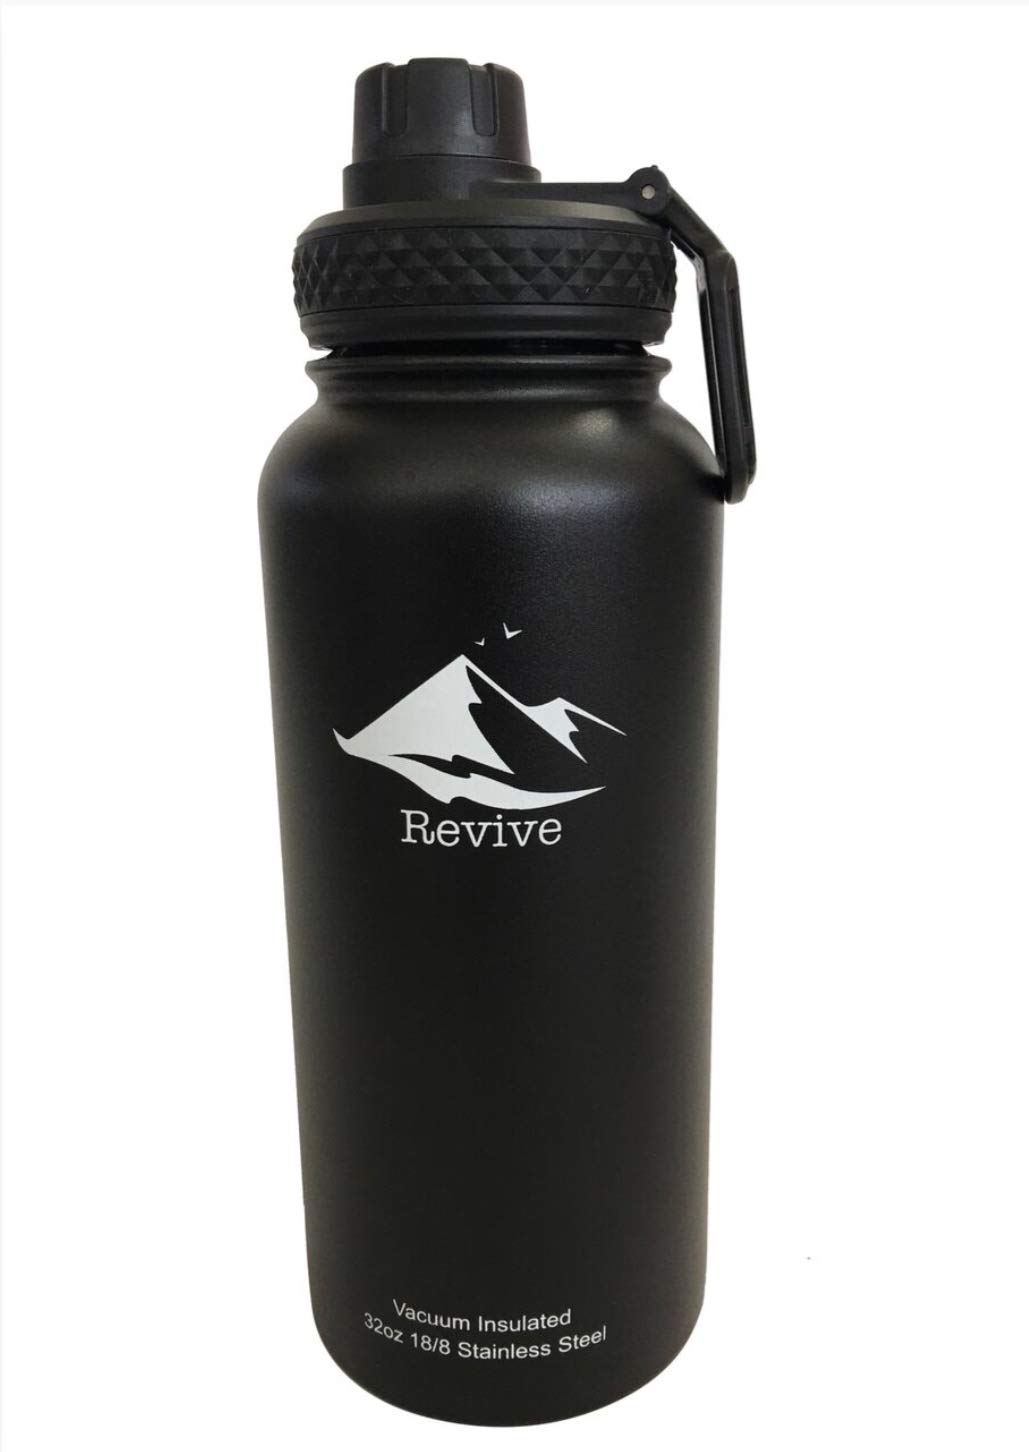 Revive 32oz Stainless Steel Water Bottle Eco Friendly BPA Free Double Wall Vacuum Insulated 18/8 Food Grade Stainless Steel (Teal) by Revive (Image #6)